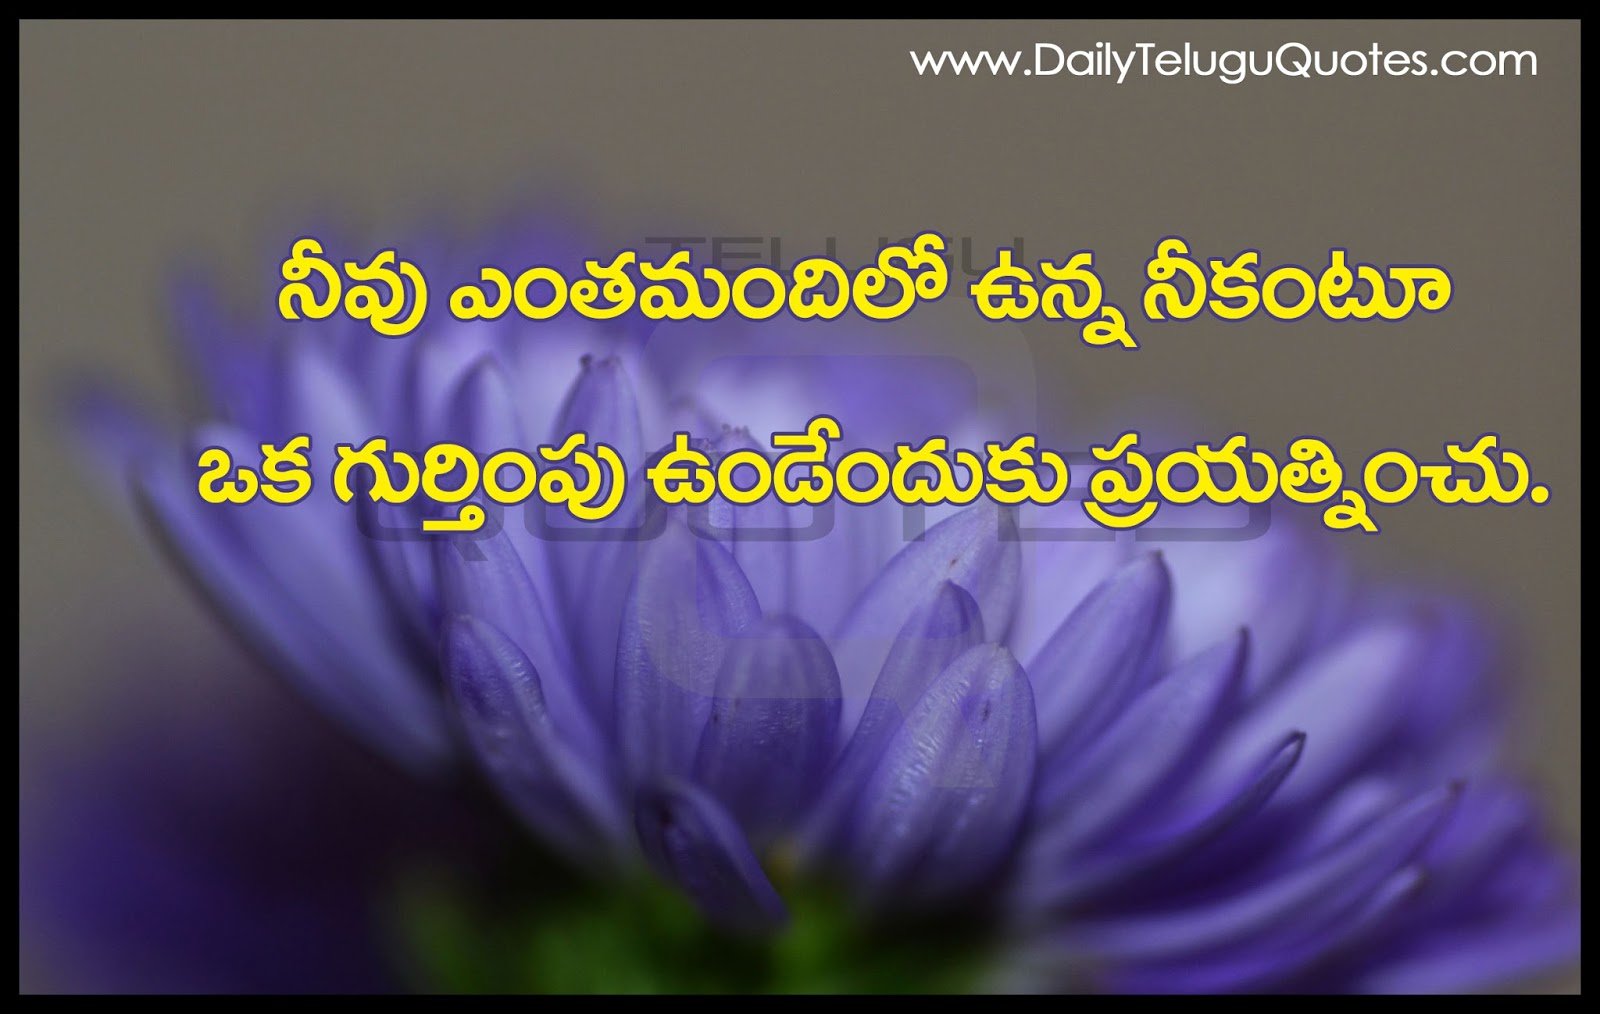 Raja Rani Hd Wallpapers With Quotes Self Inspiration Thoughts And Quotes In Telugu